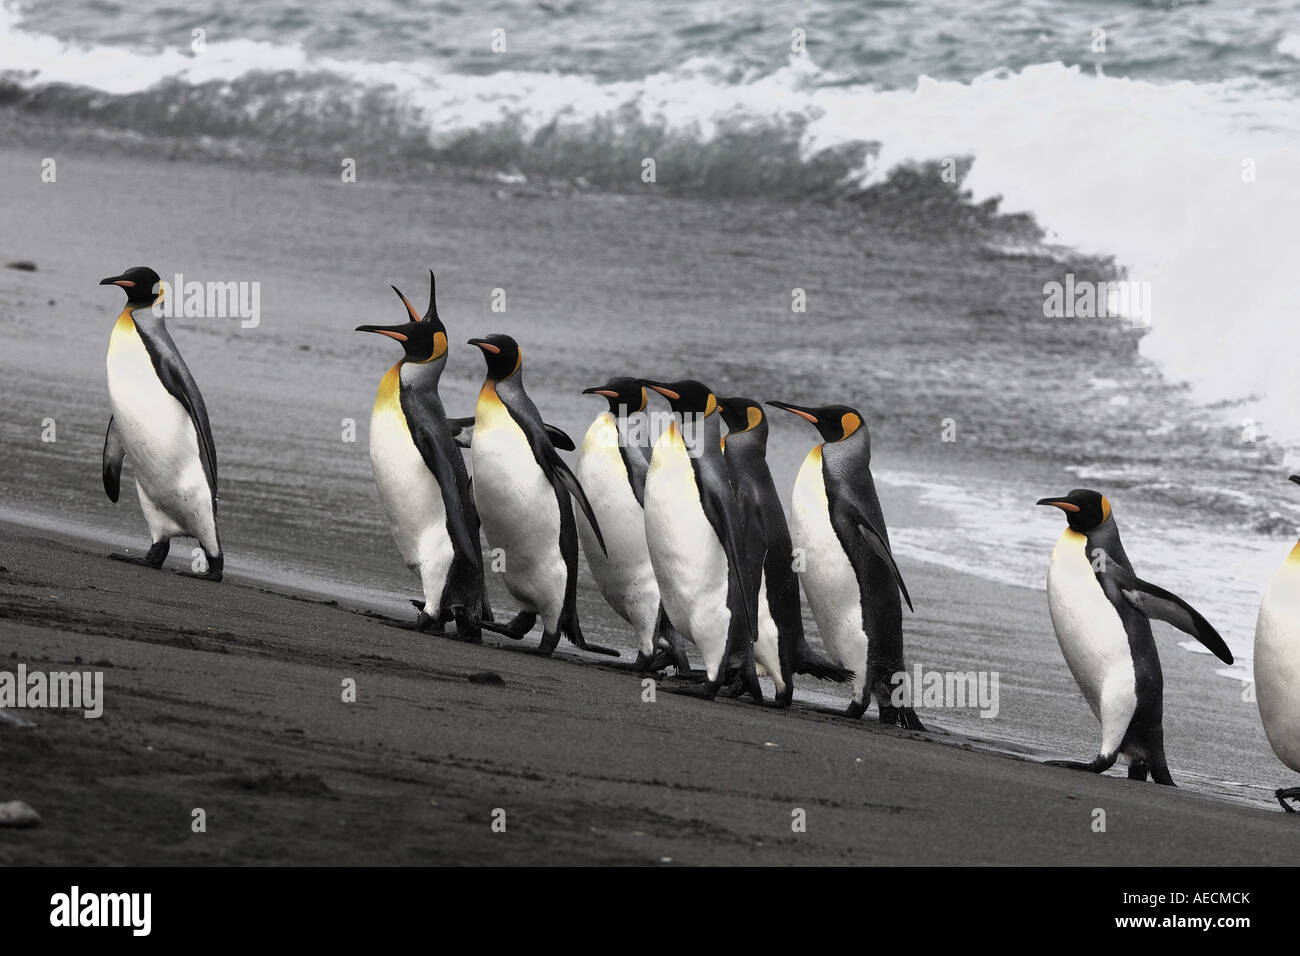 king penguin (Aptenodytes patagonicus), toddling one after another on the beach, Antarctica, Suedgeorgien - Stock Image